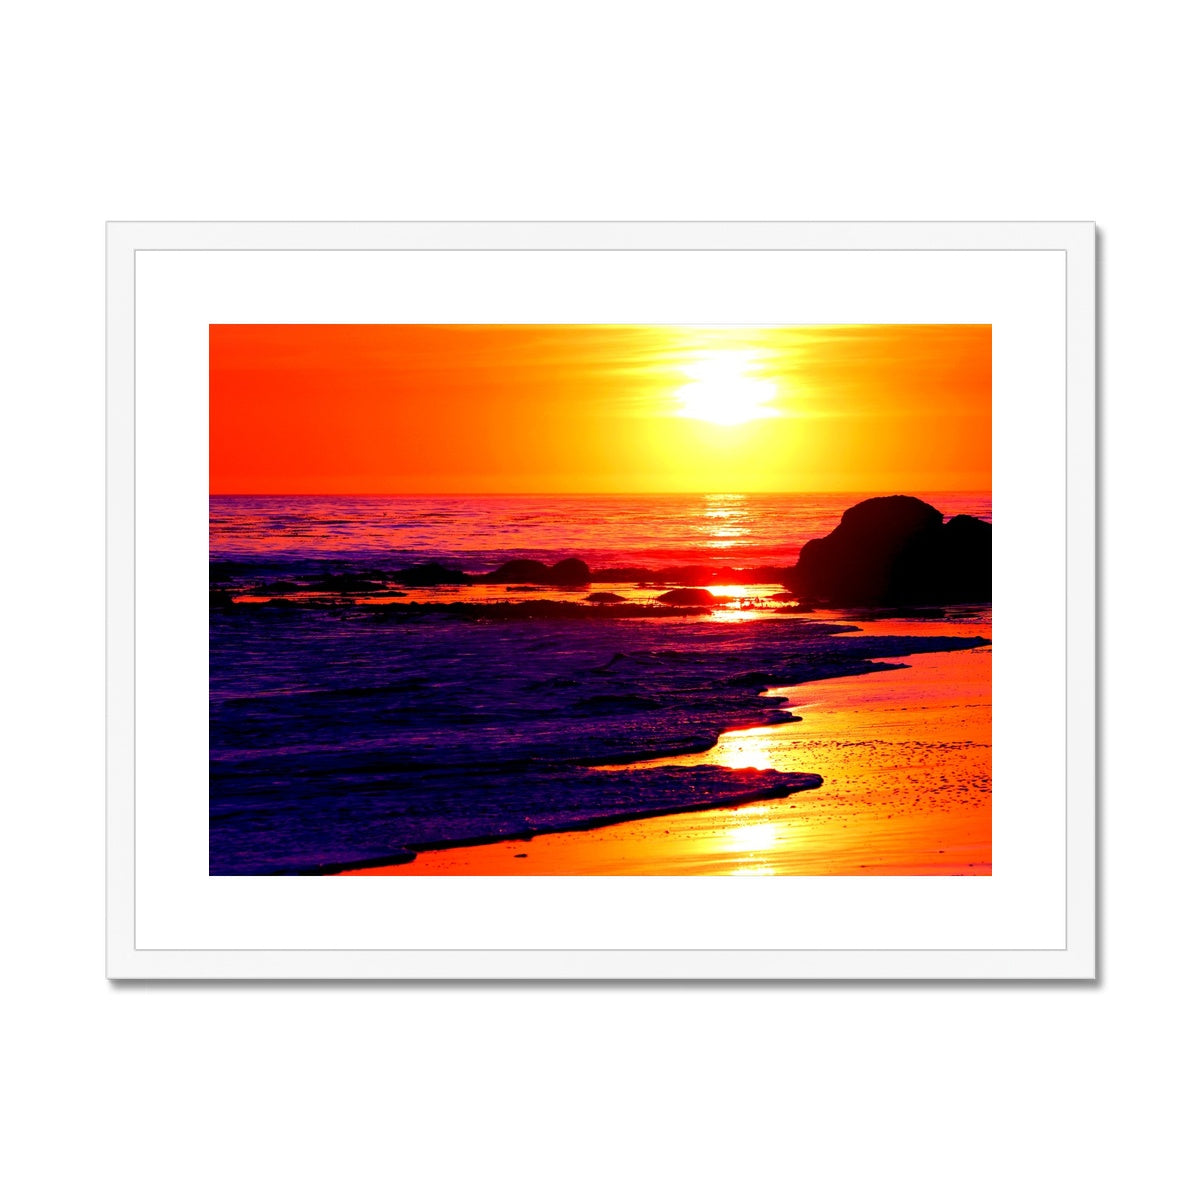 Sunset Dreams - California Framed & Mounted Print